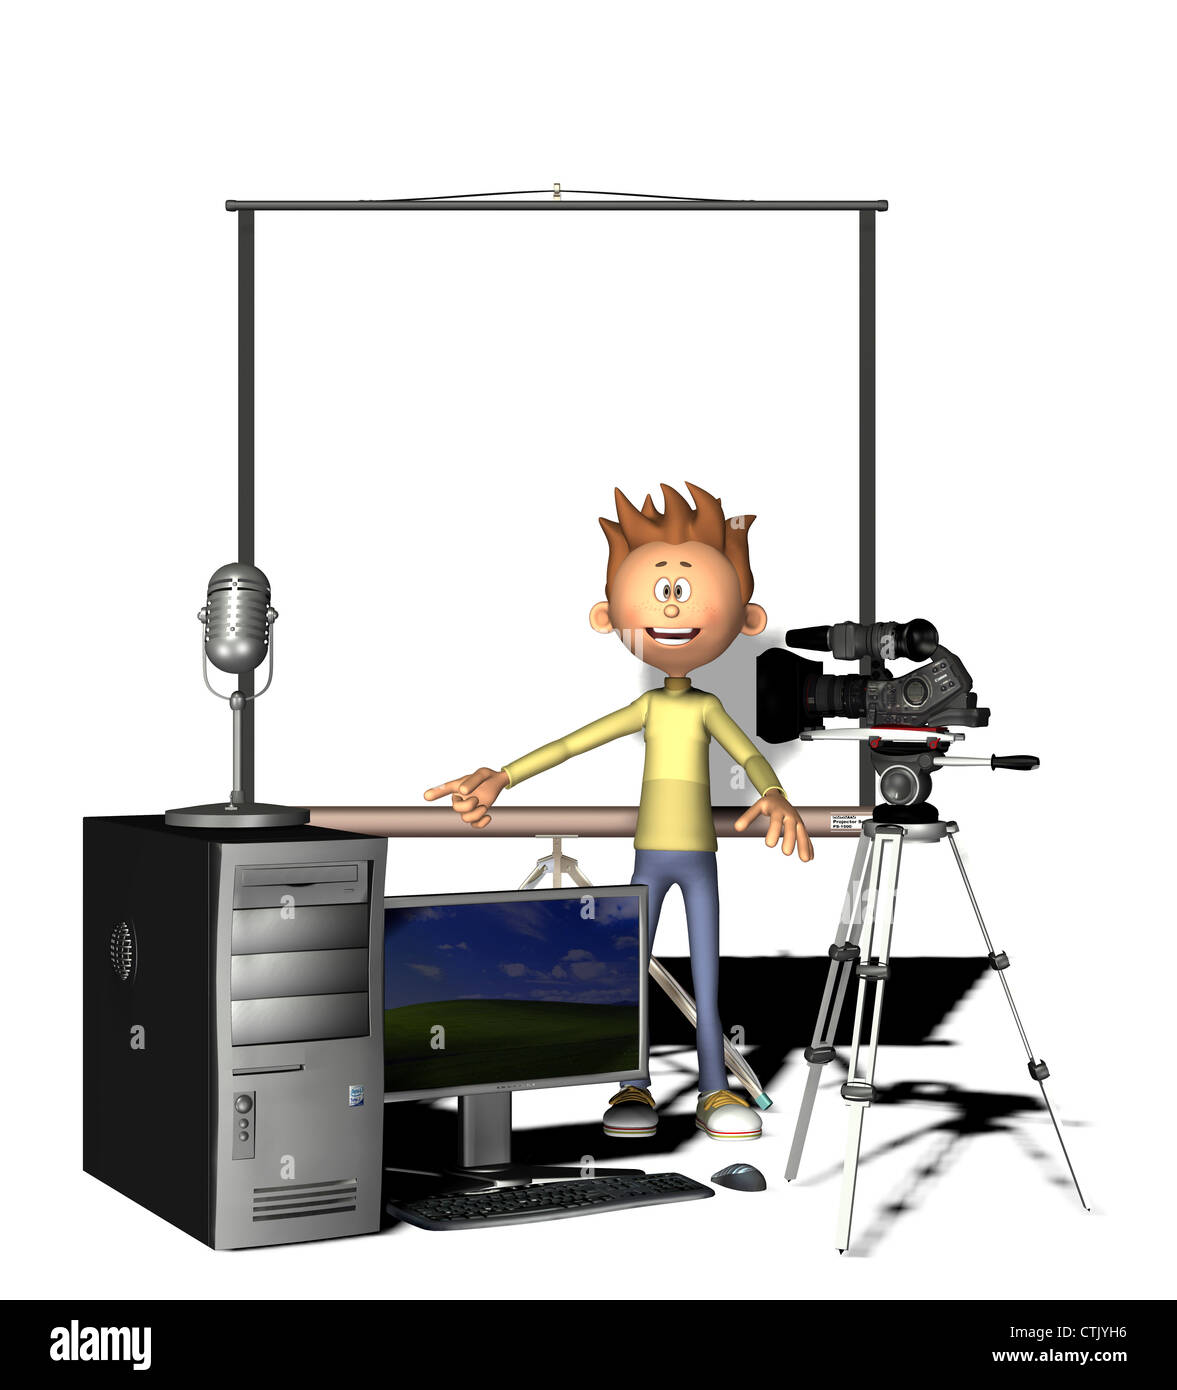 cartoon figure with silver screen and multimedia equipment (Computer, Video, Audio) - Stock Image